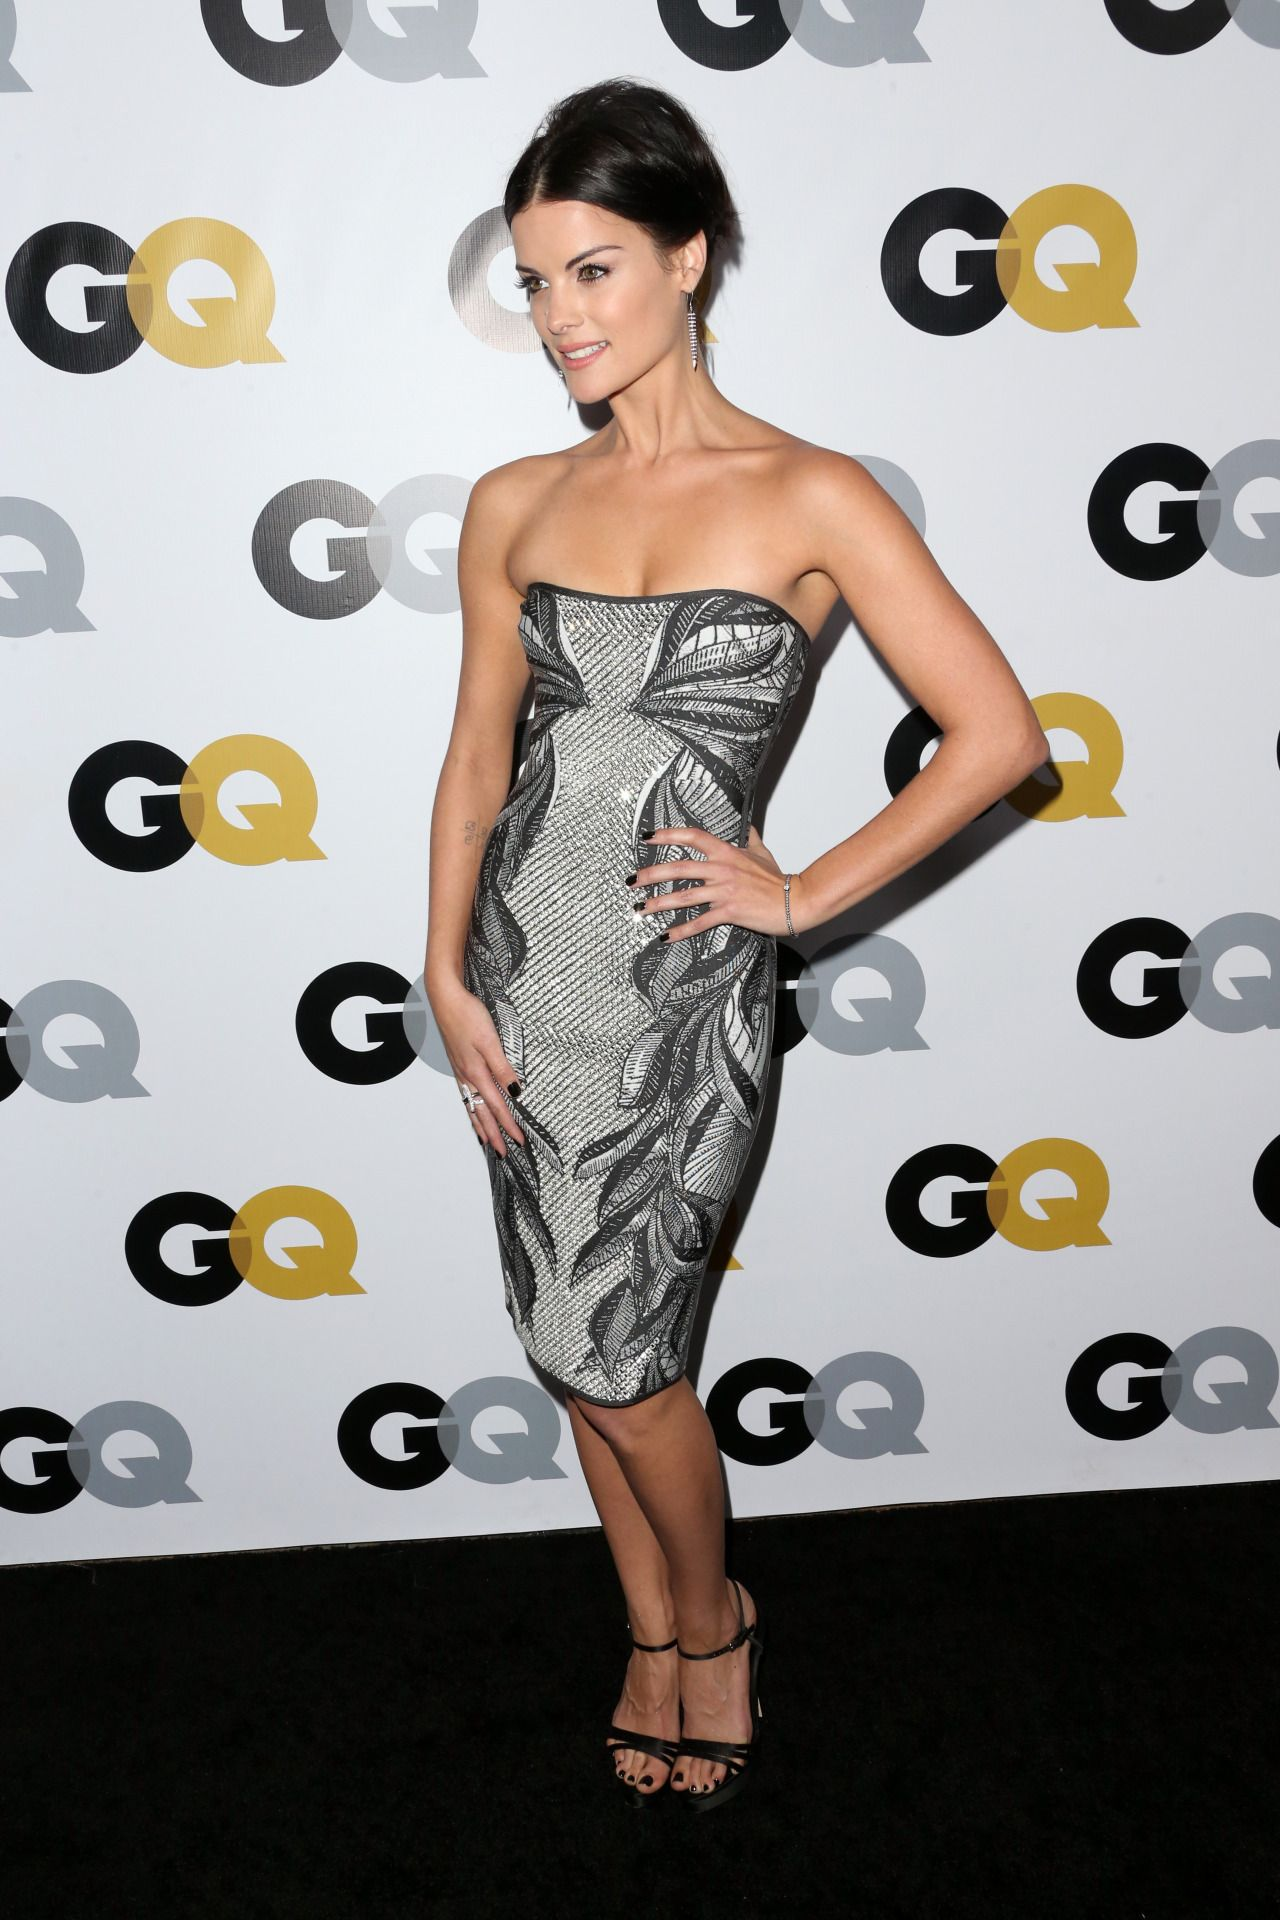 Jaimie Alexander For more visit: http://bit.ly/1VgTowp